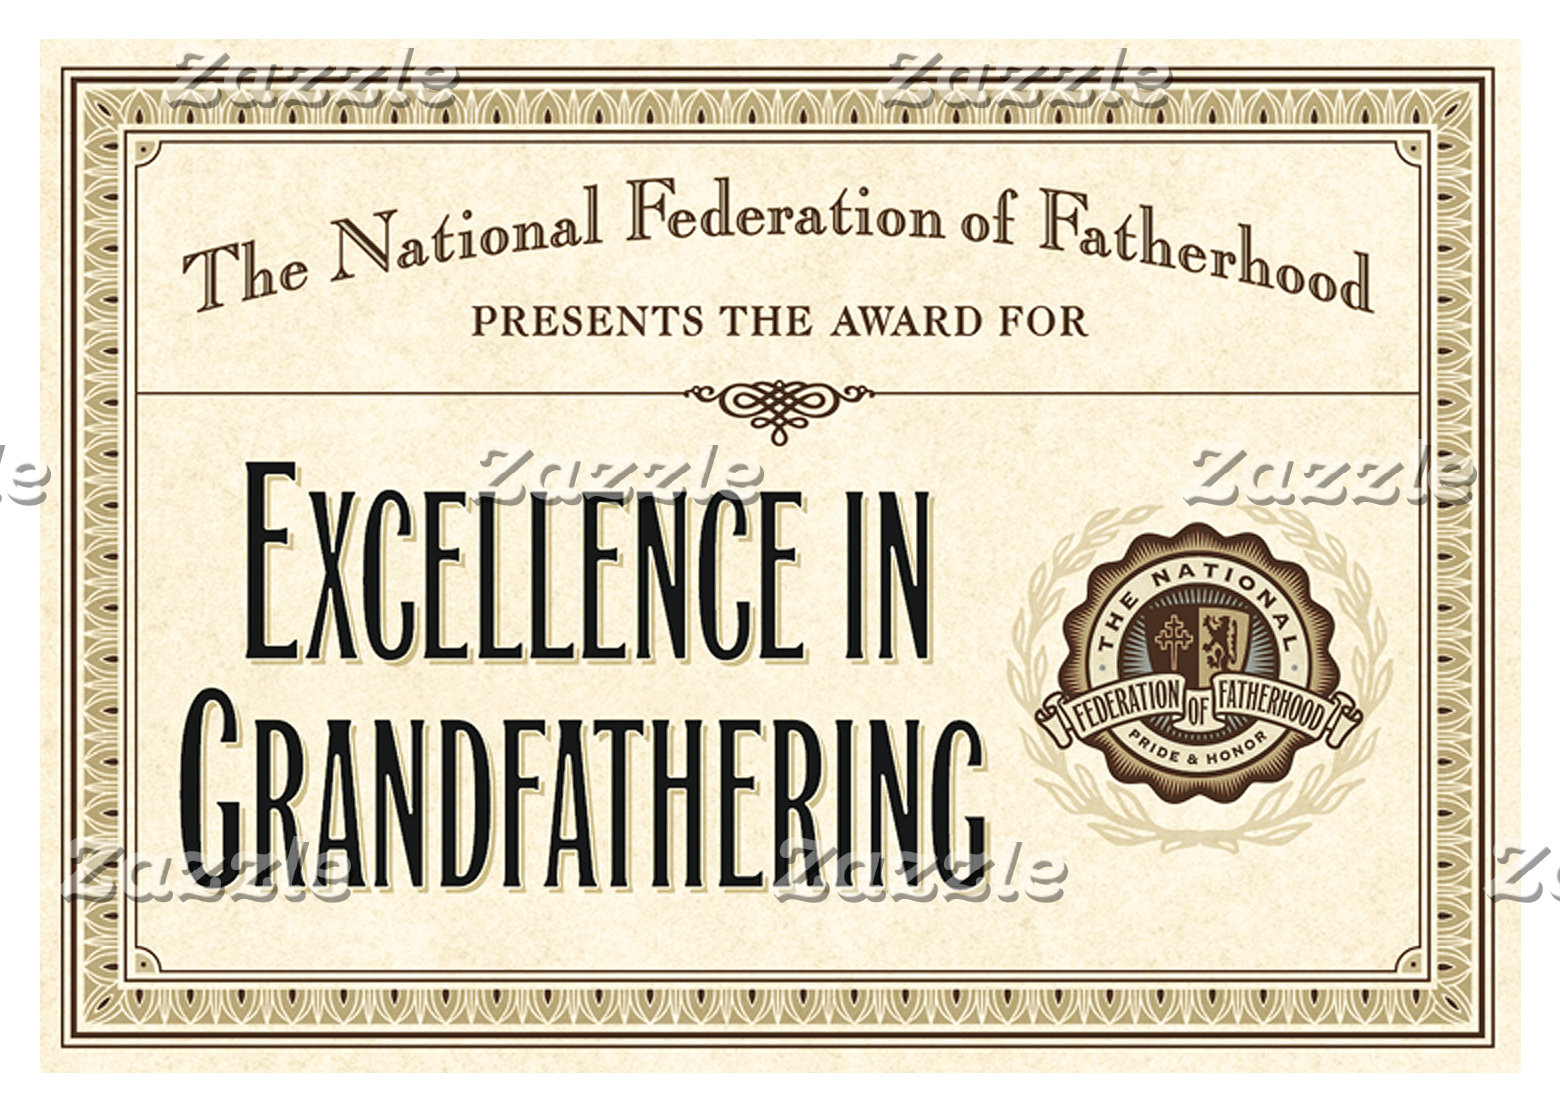 Excellence In Grandfathering